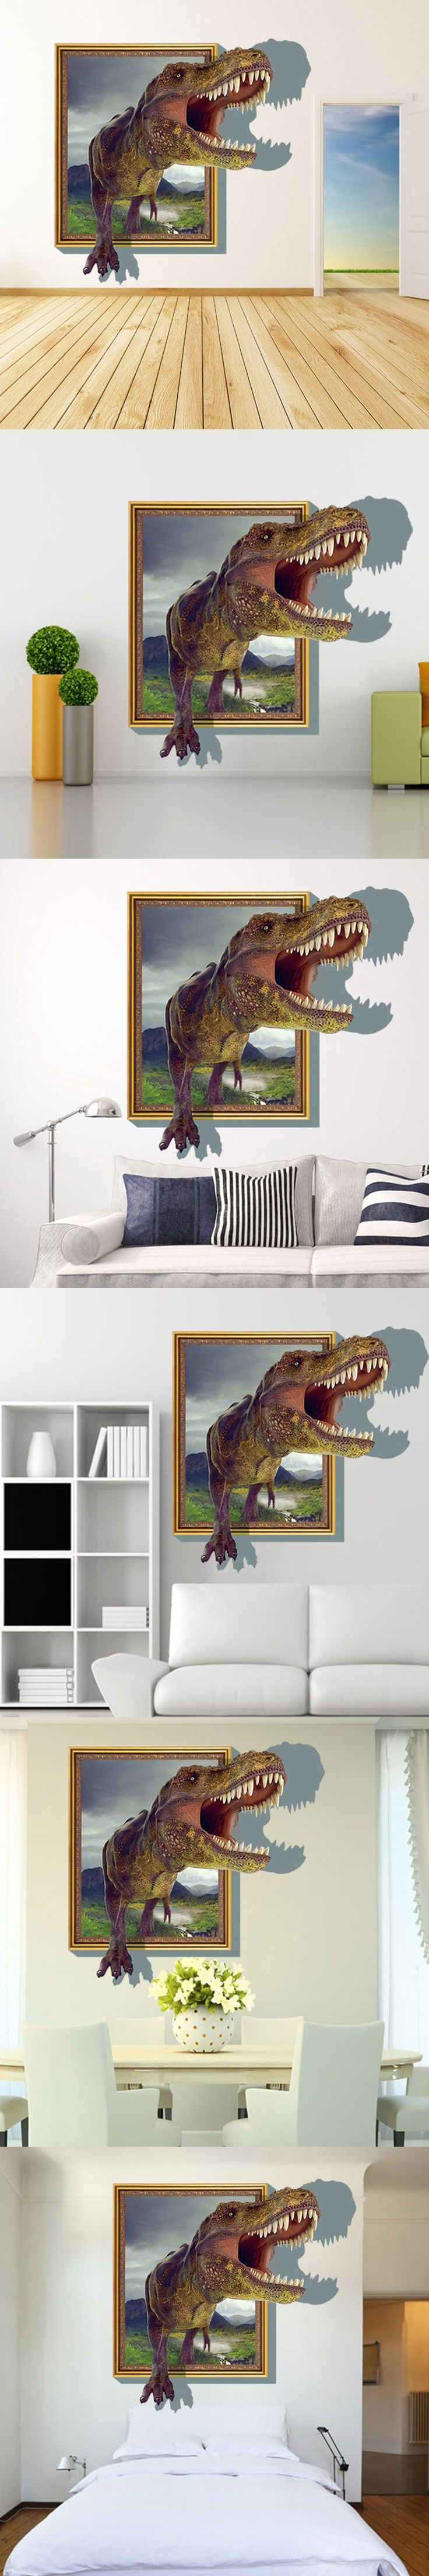 Best  Dinosaur Wall Stickers Ideas On Pinterest Dinosaur Wall - 3d dinosaur wall decals